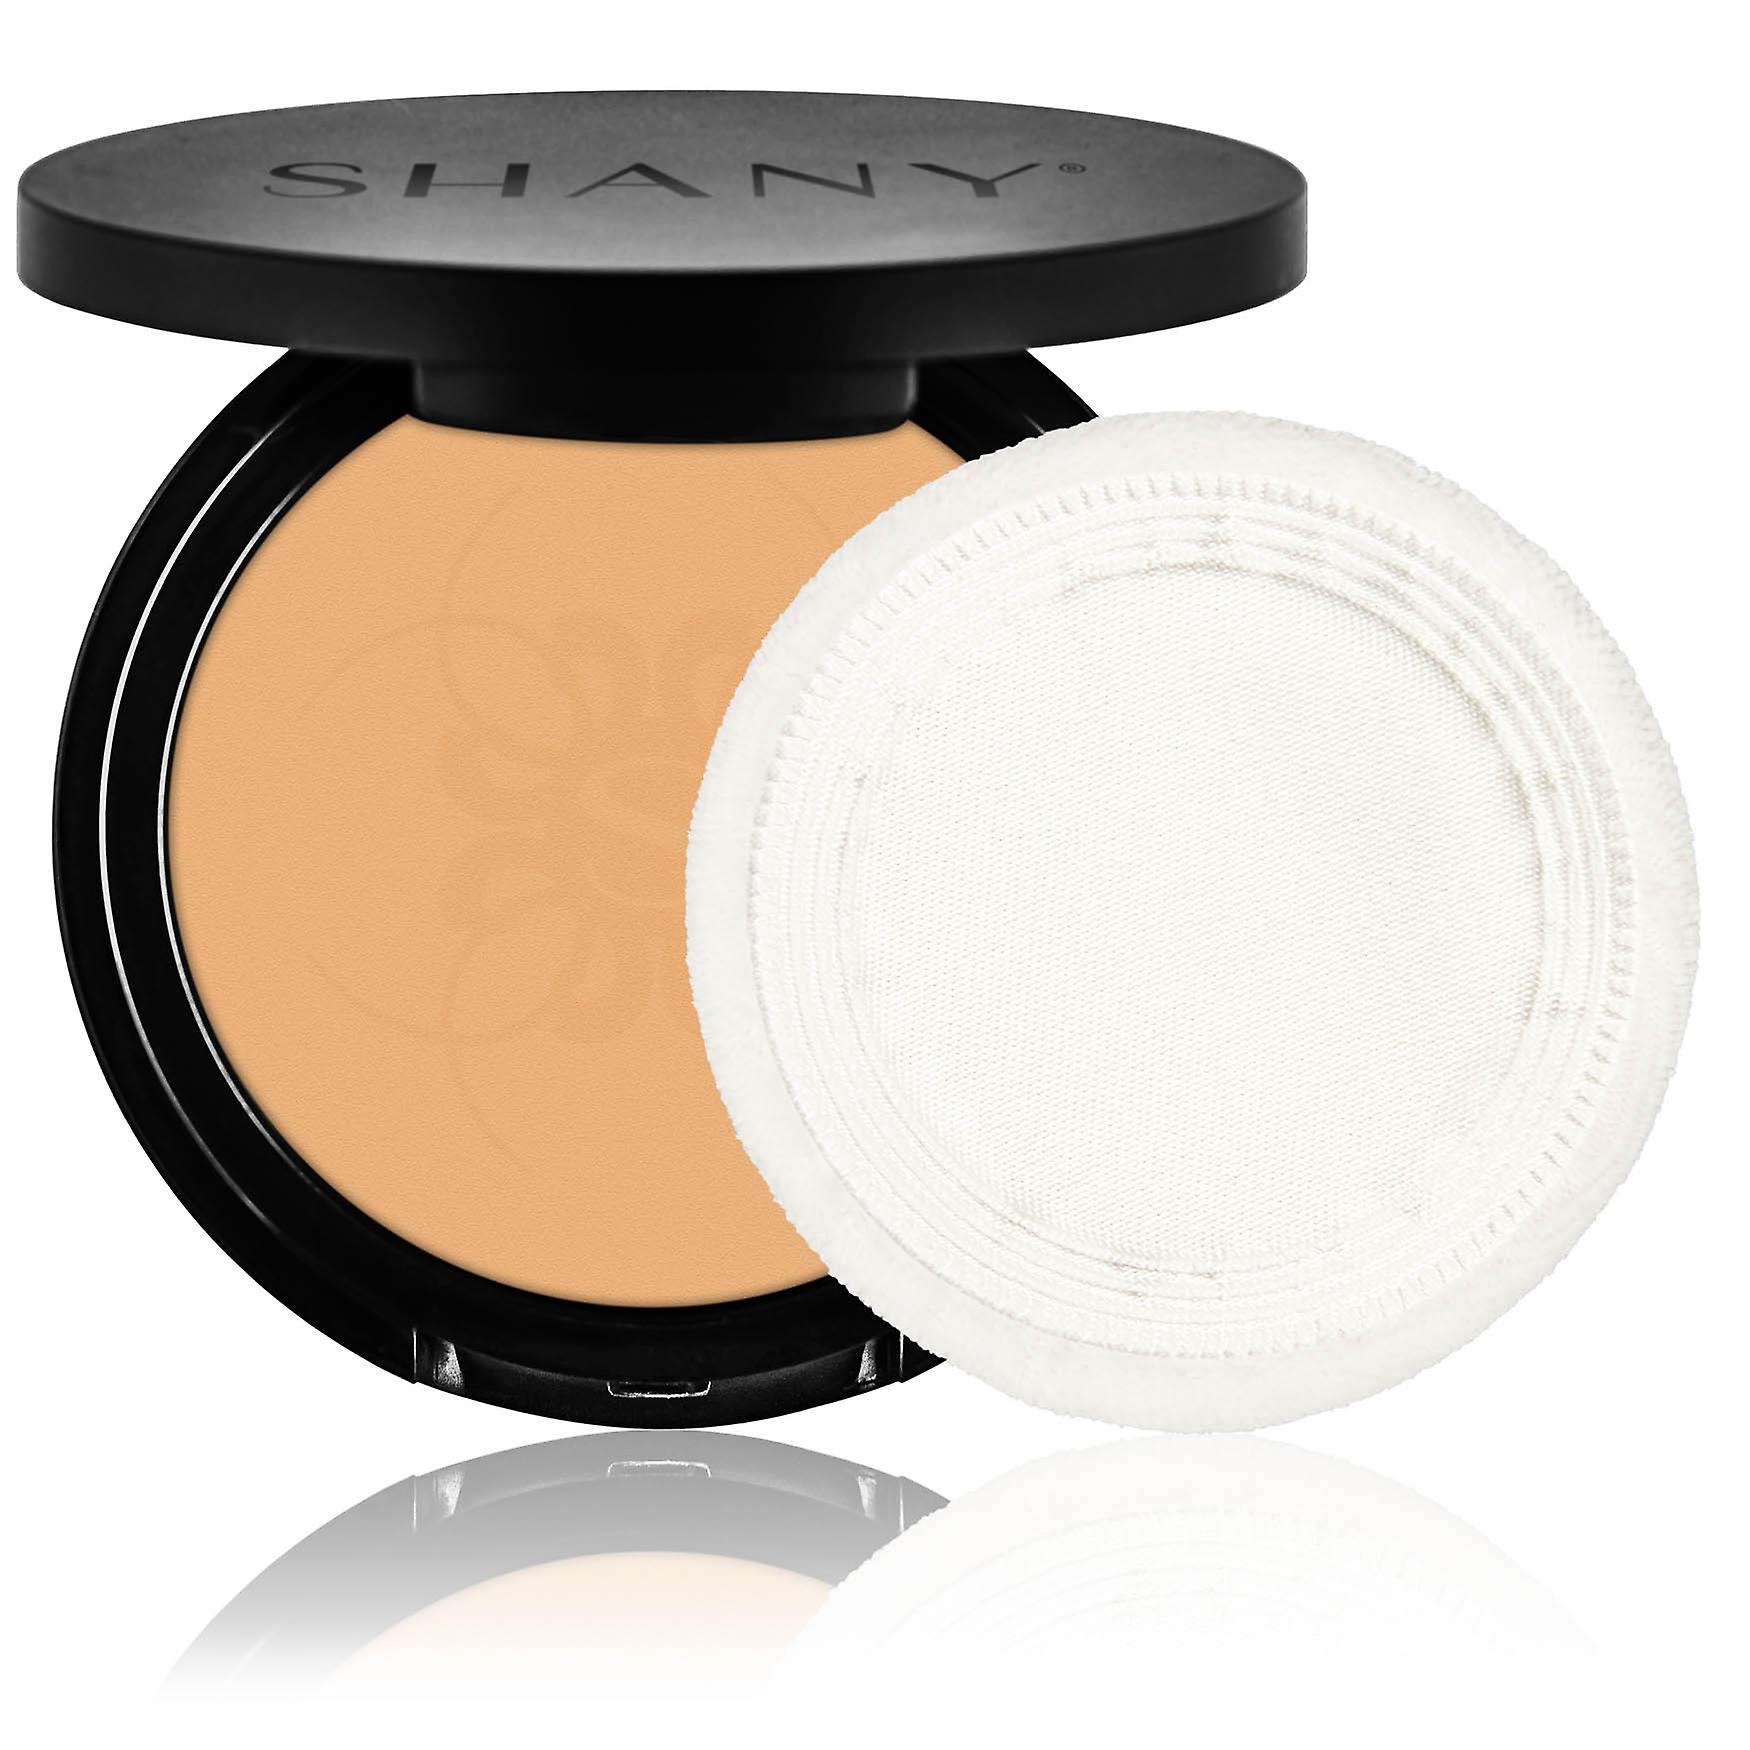 SHANY Two Way Foundation, Oil - Free, Talc Free, Wet/Dry